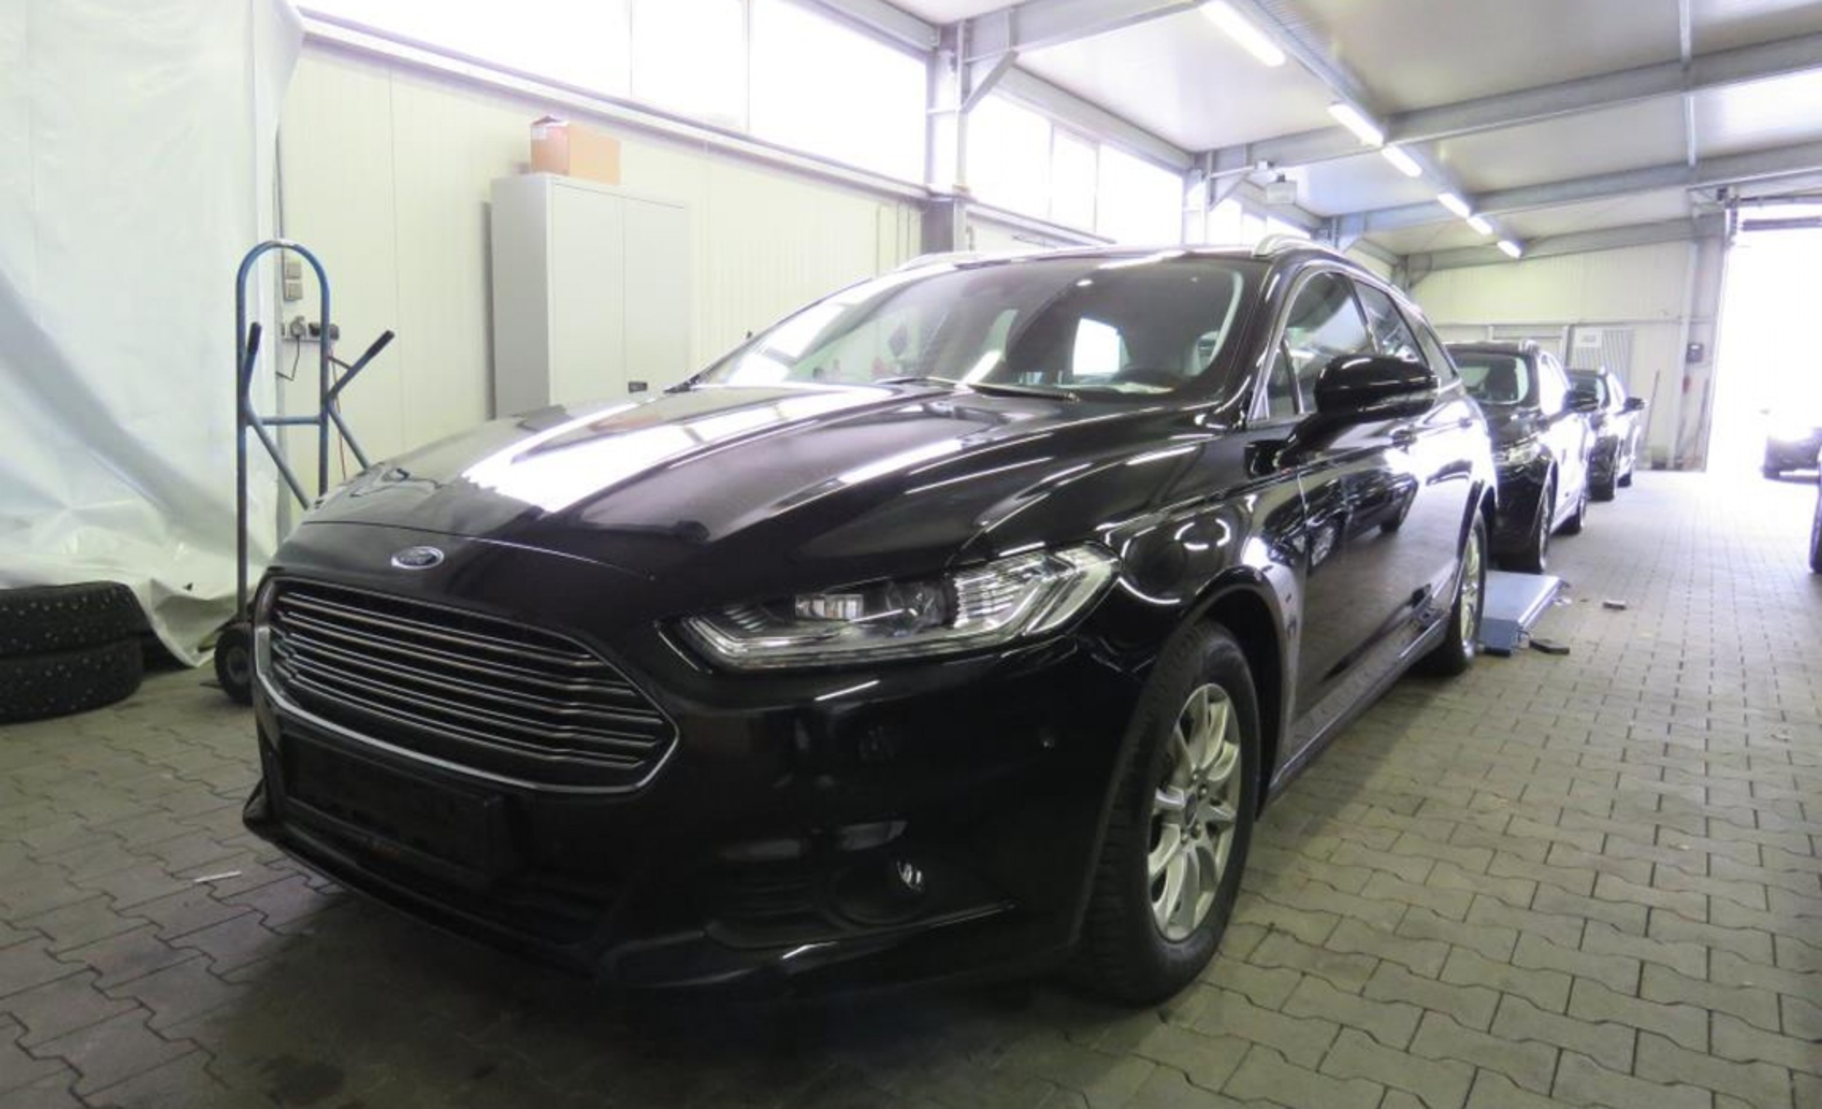 Ford Mondeo Turnier 2.0 TDCi Start-Stop Aut. Business Edition (689018) detail1